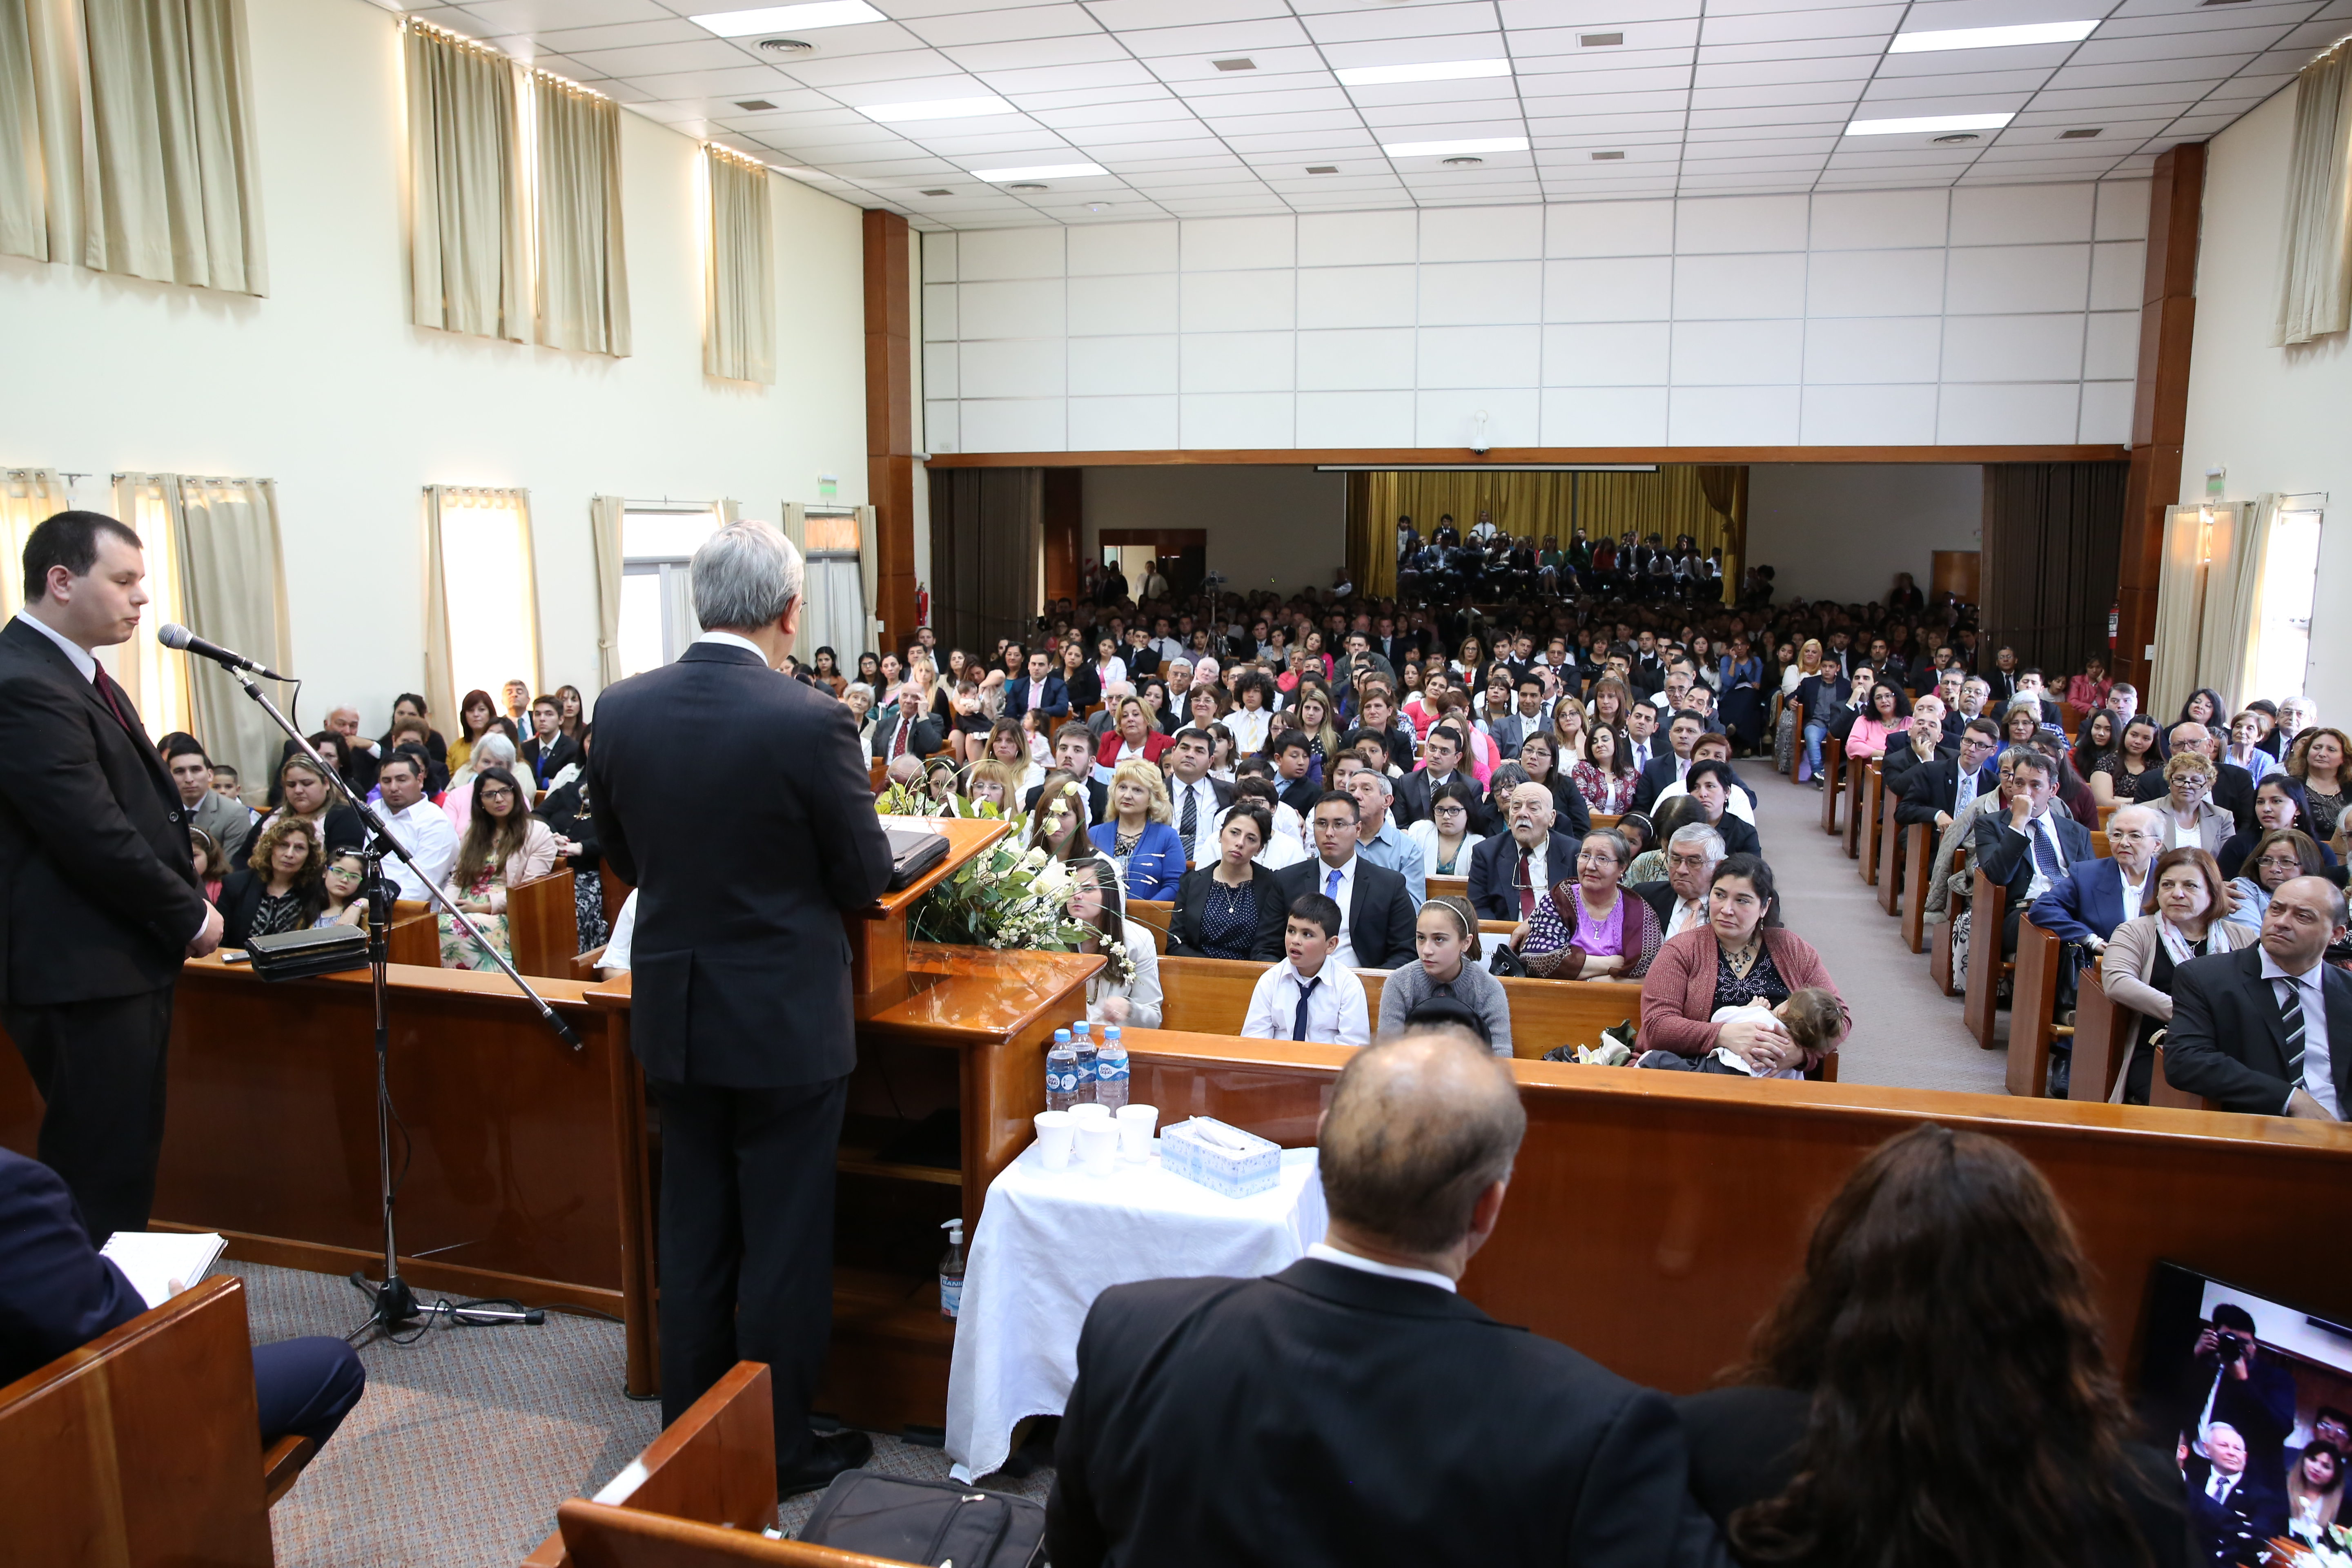 Elder Gong speaks at a stake conference in the Argentina Bahia Blanca Stake on Nov. 18.